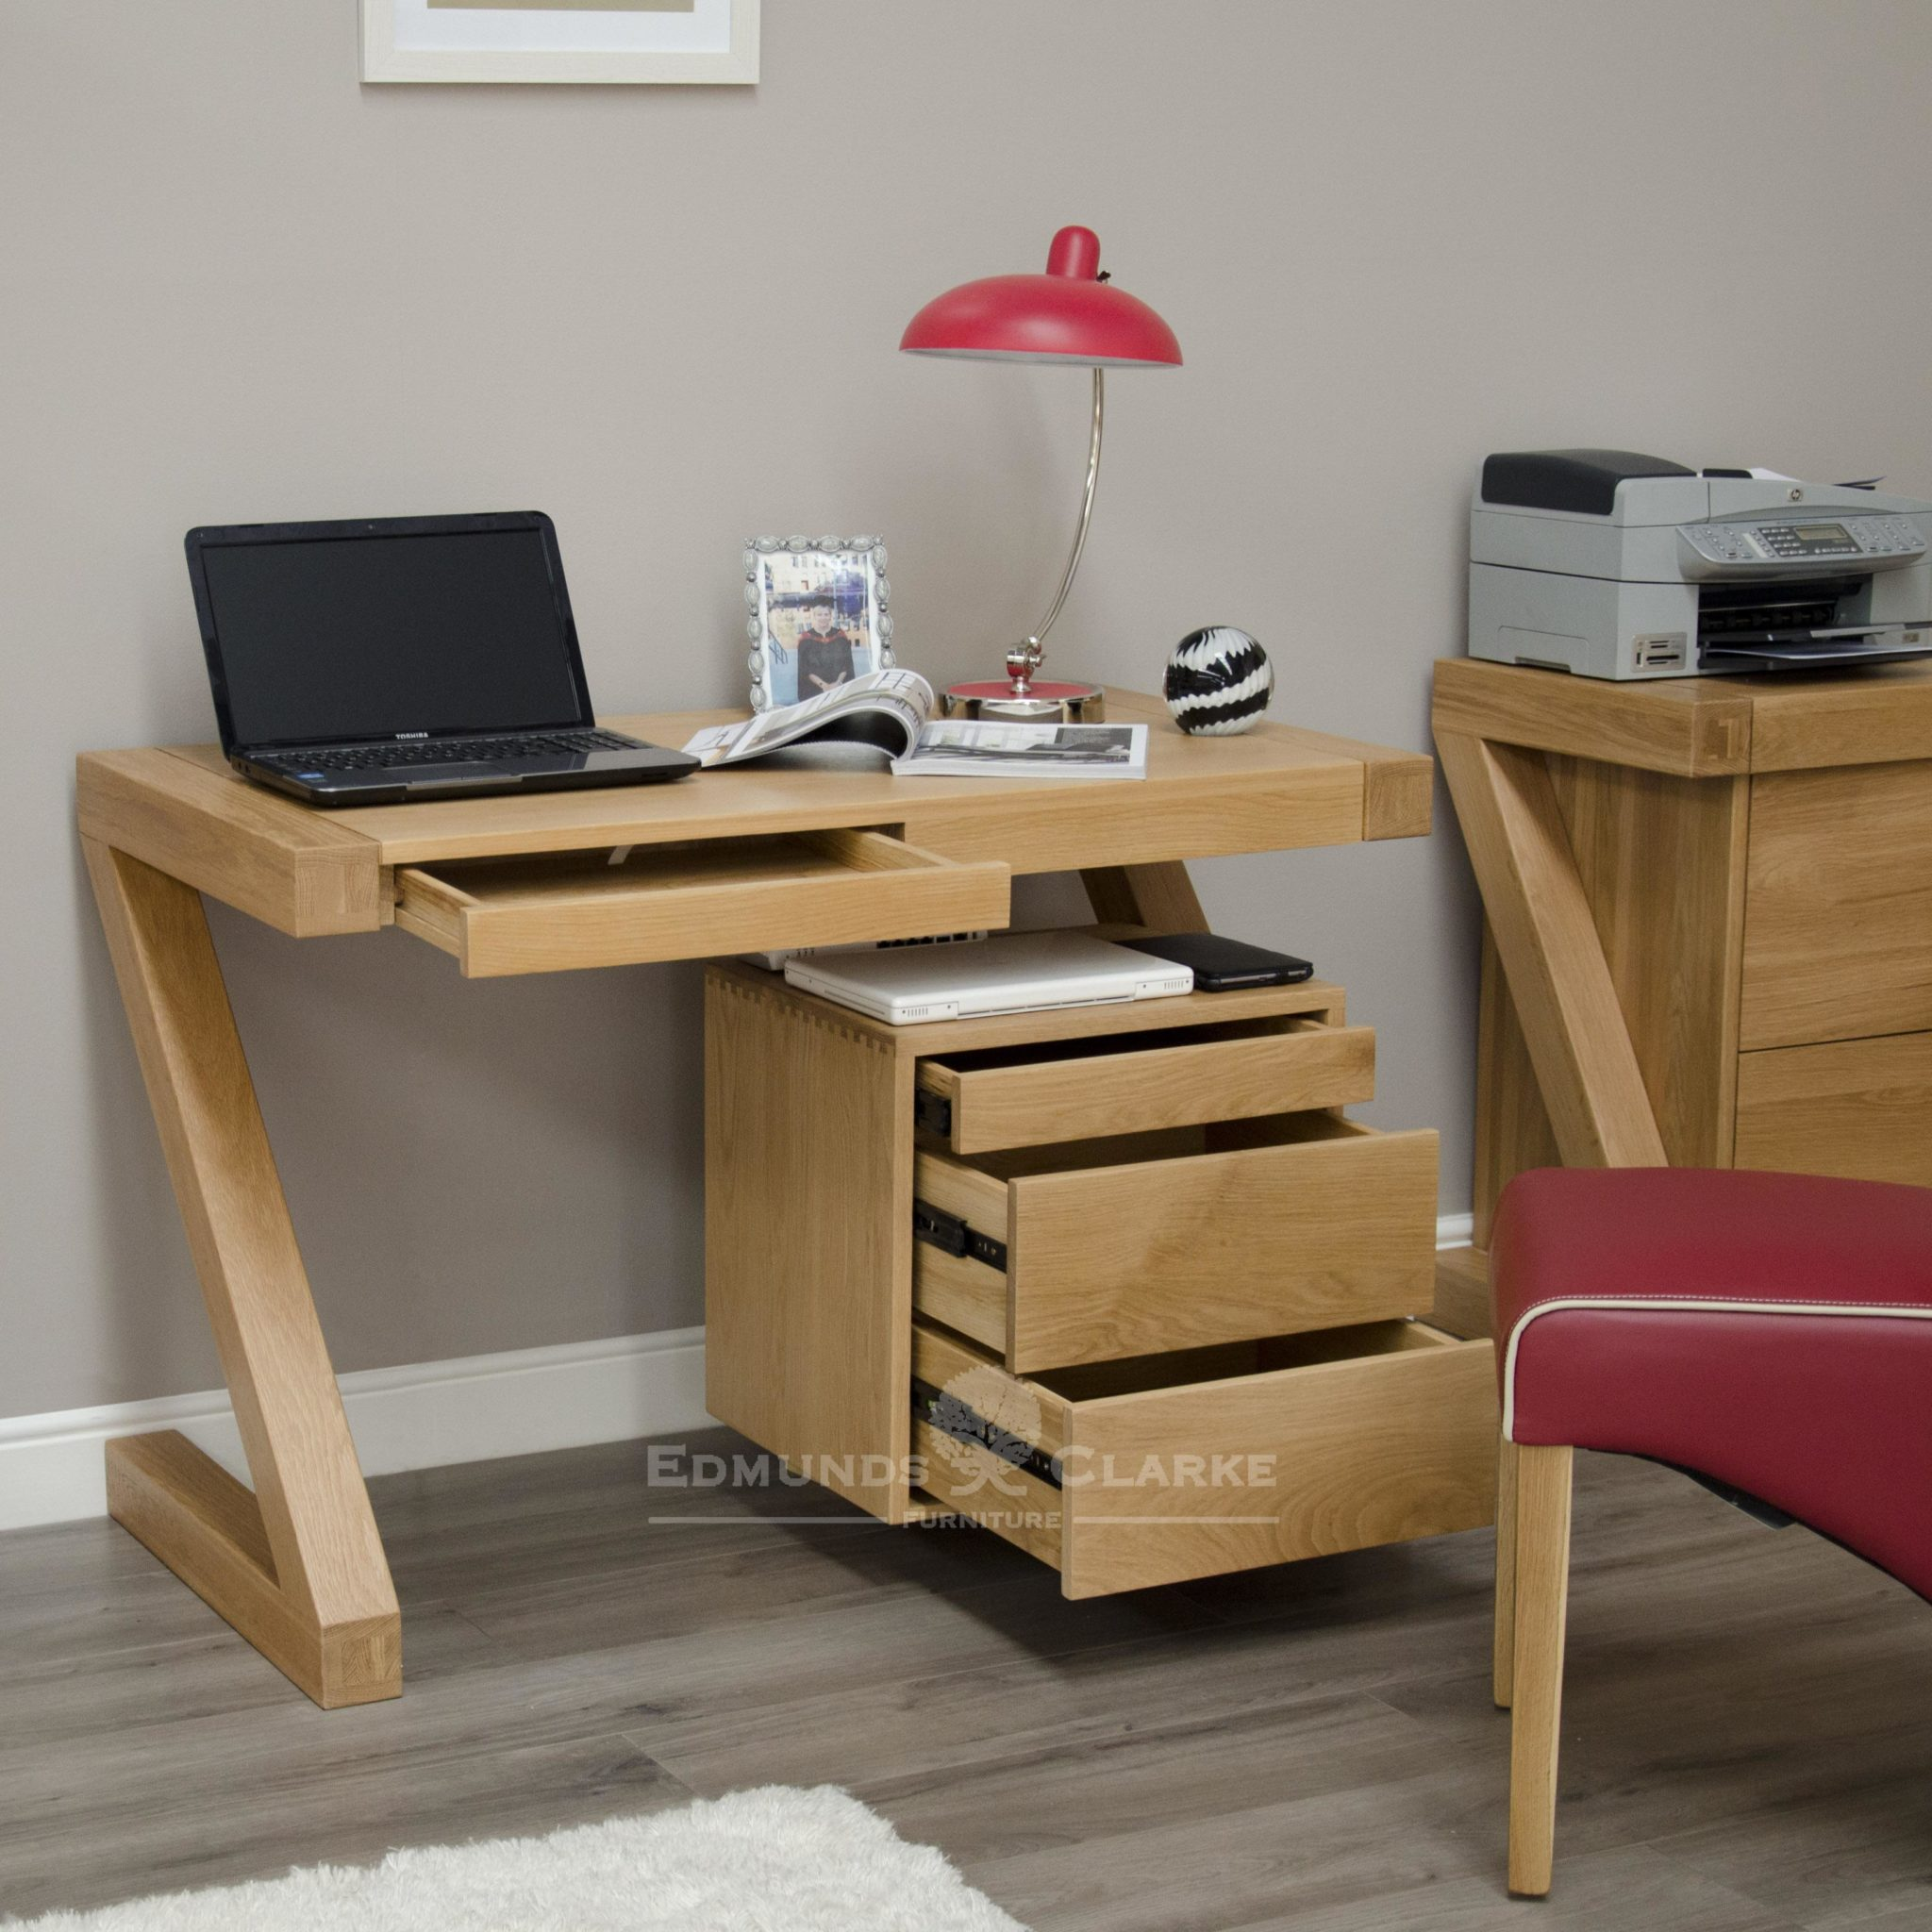 Z designer computer desk with 3 sliding drawers and space for laptop